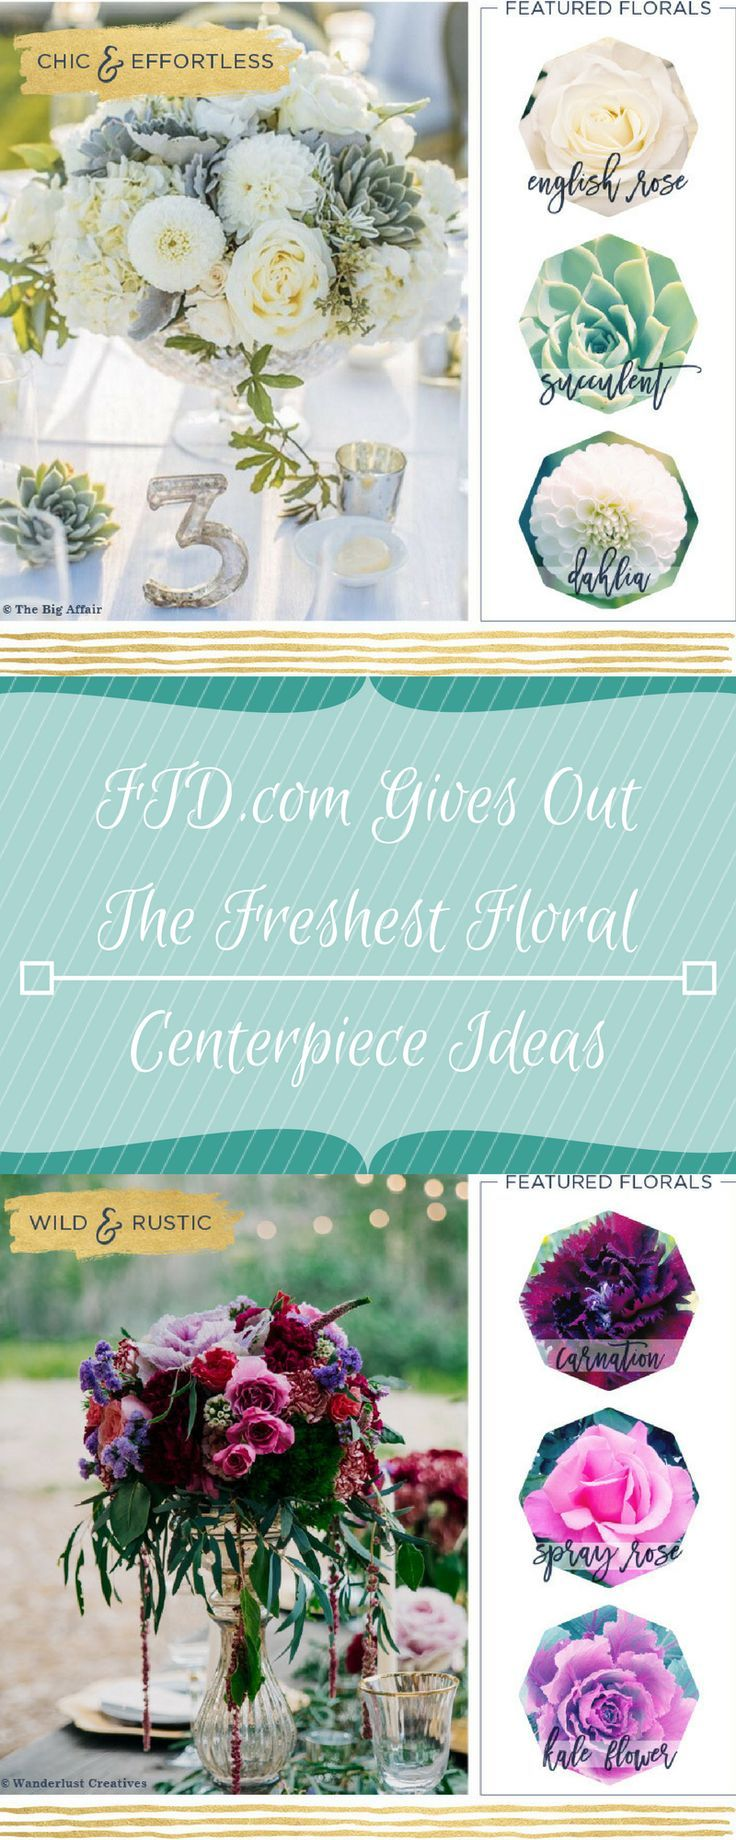 FTD Gives Out The Freshest Floral Centerpiece Ideas